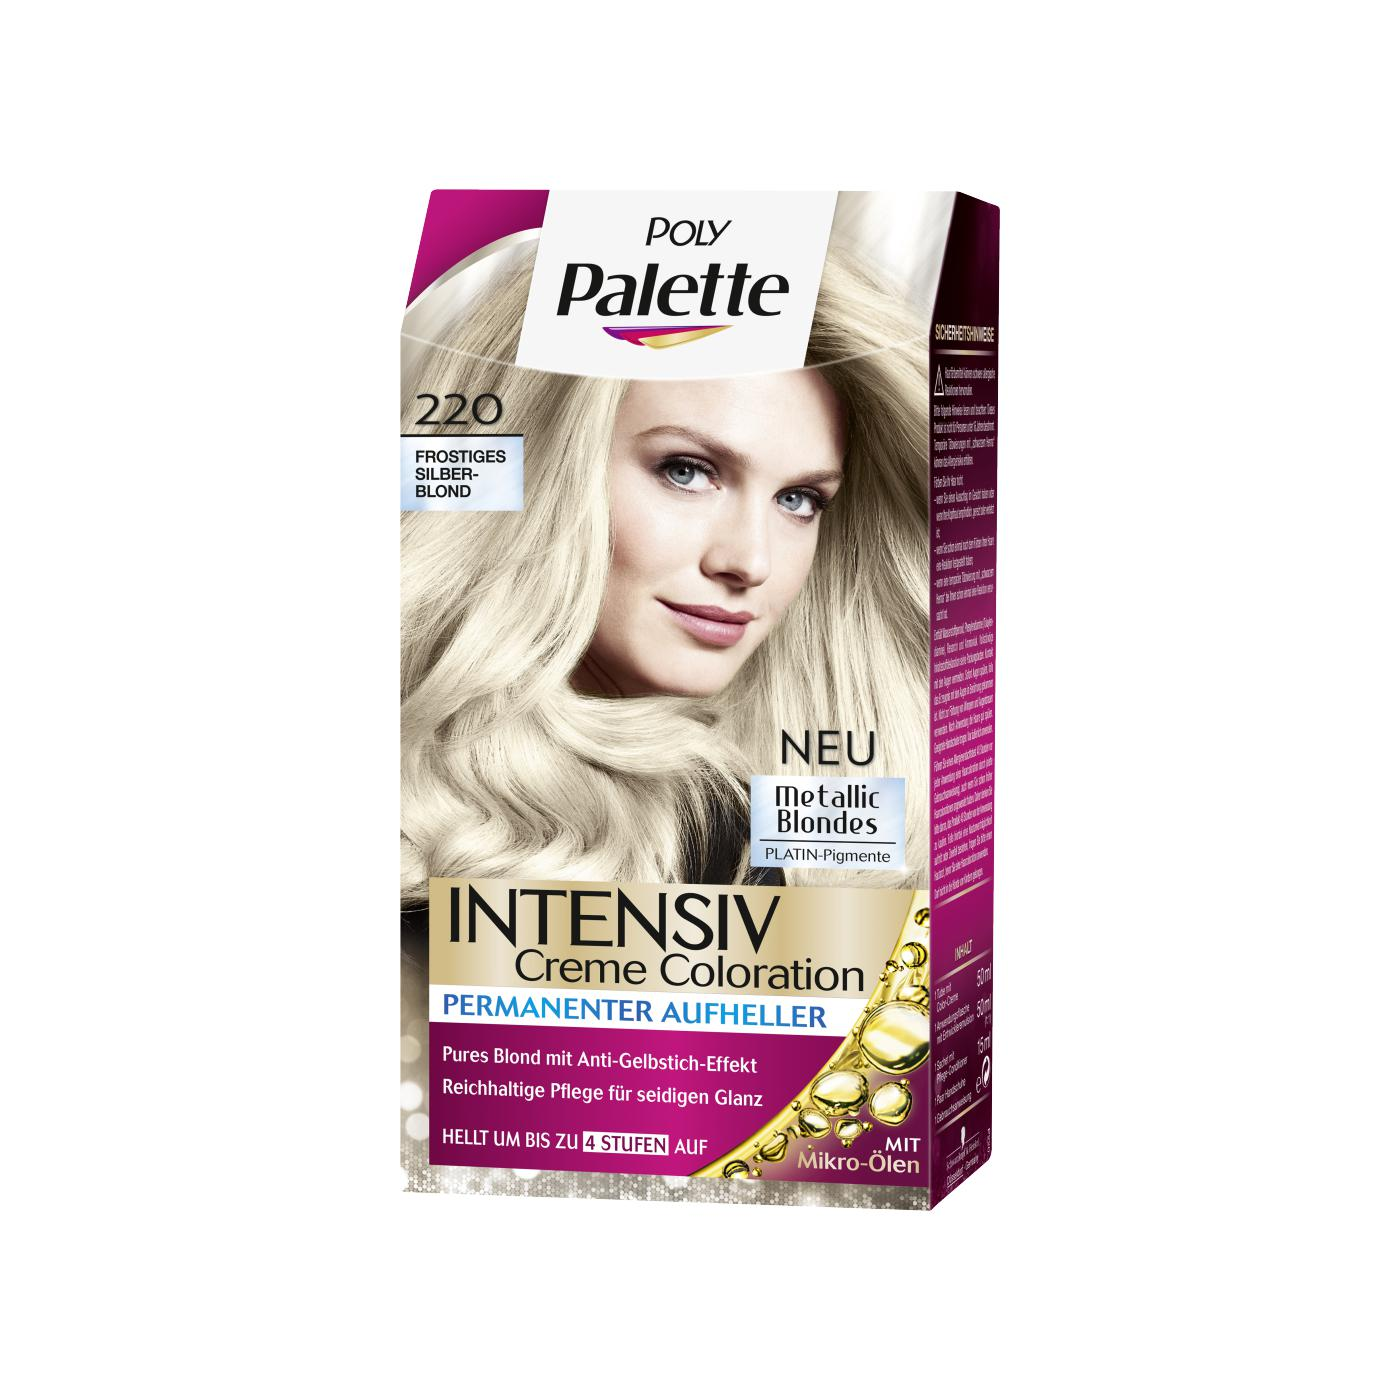 Poly Palette Farben Intensiv Creme Coloration